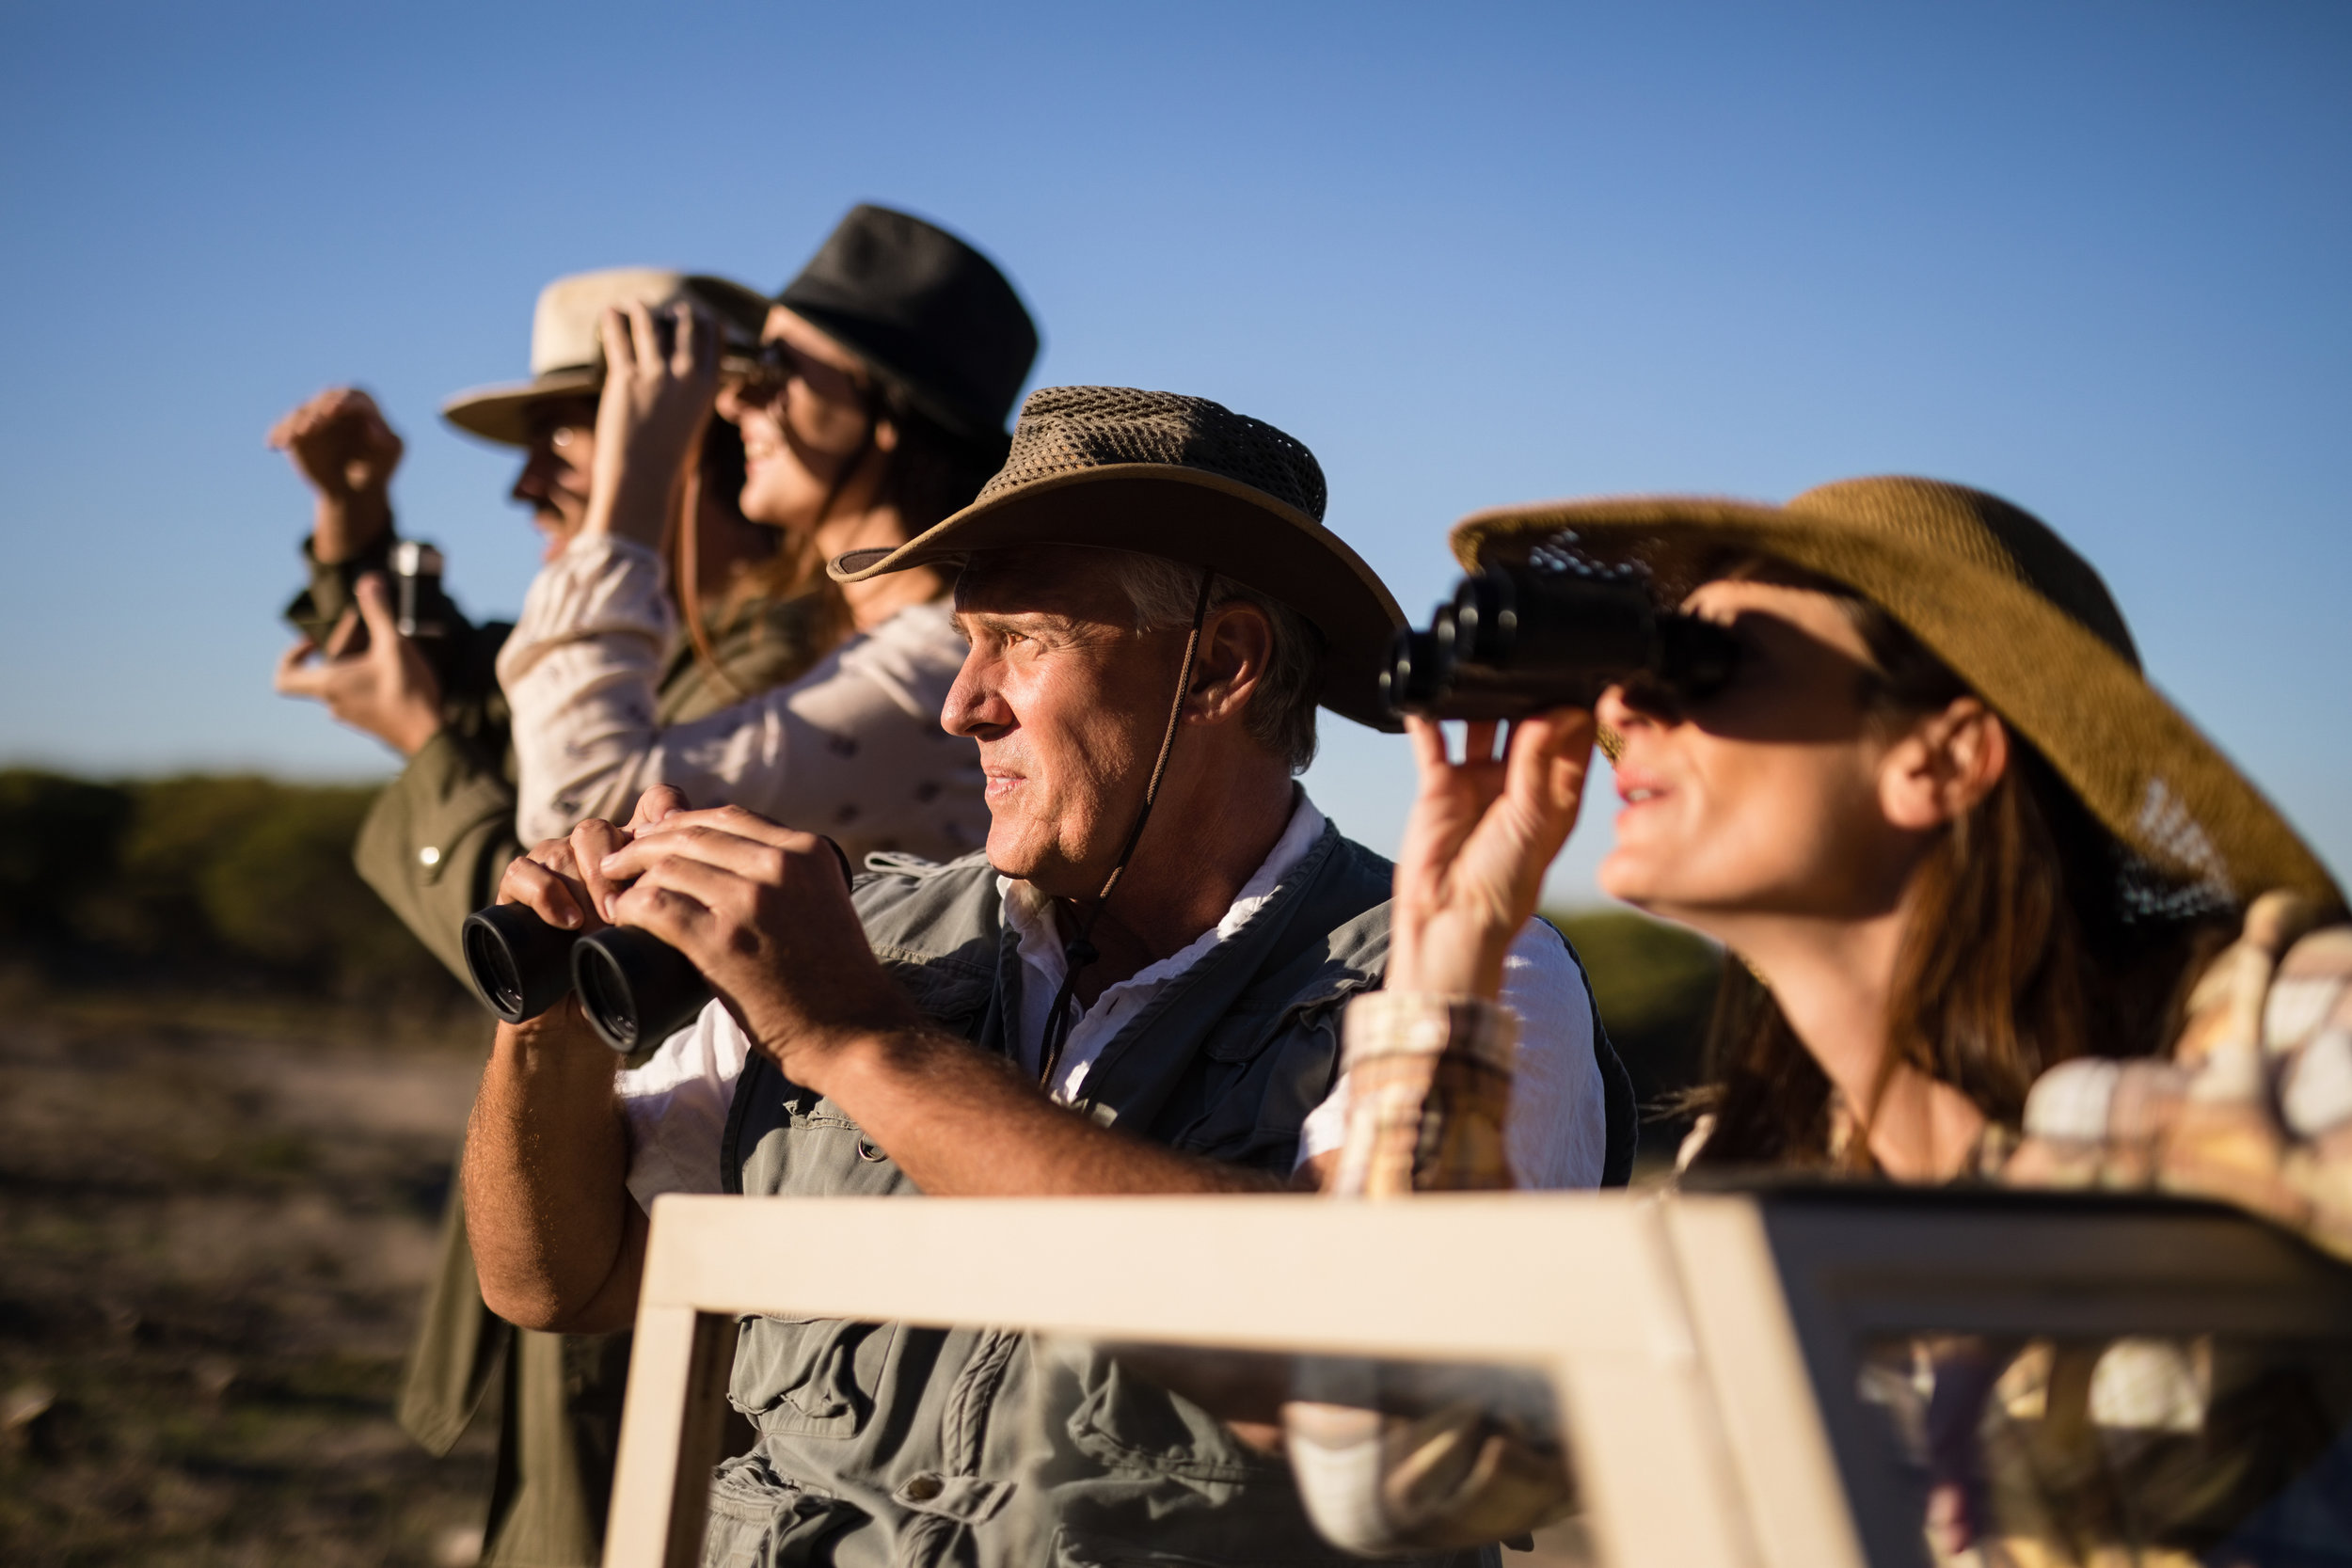 Friends-looking-through-binoculars-during-safari-vacation-879922462_3869x2579.jpeg